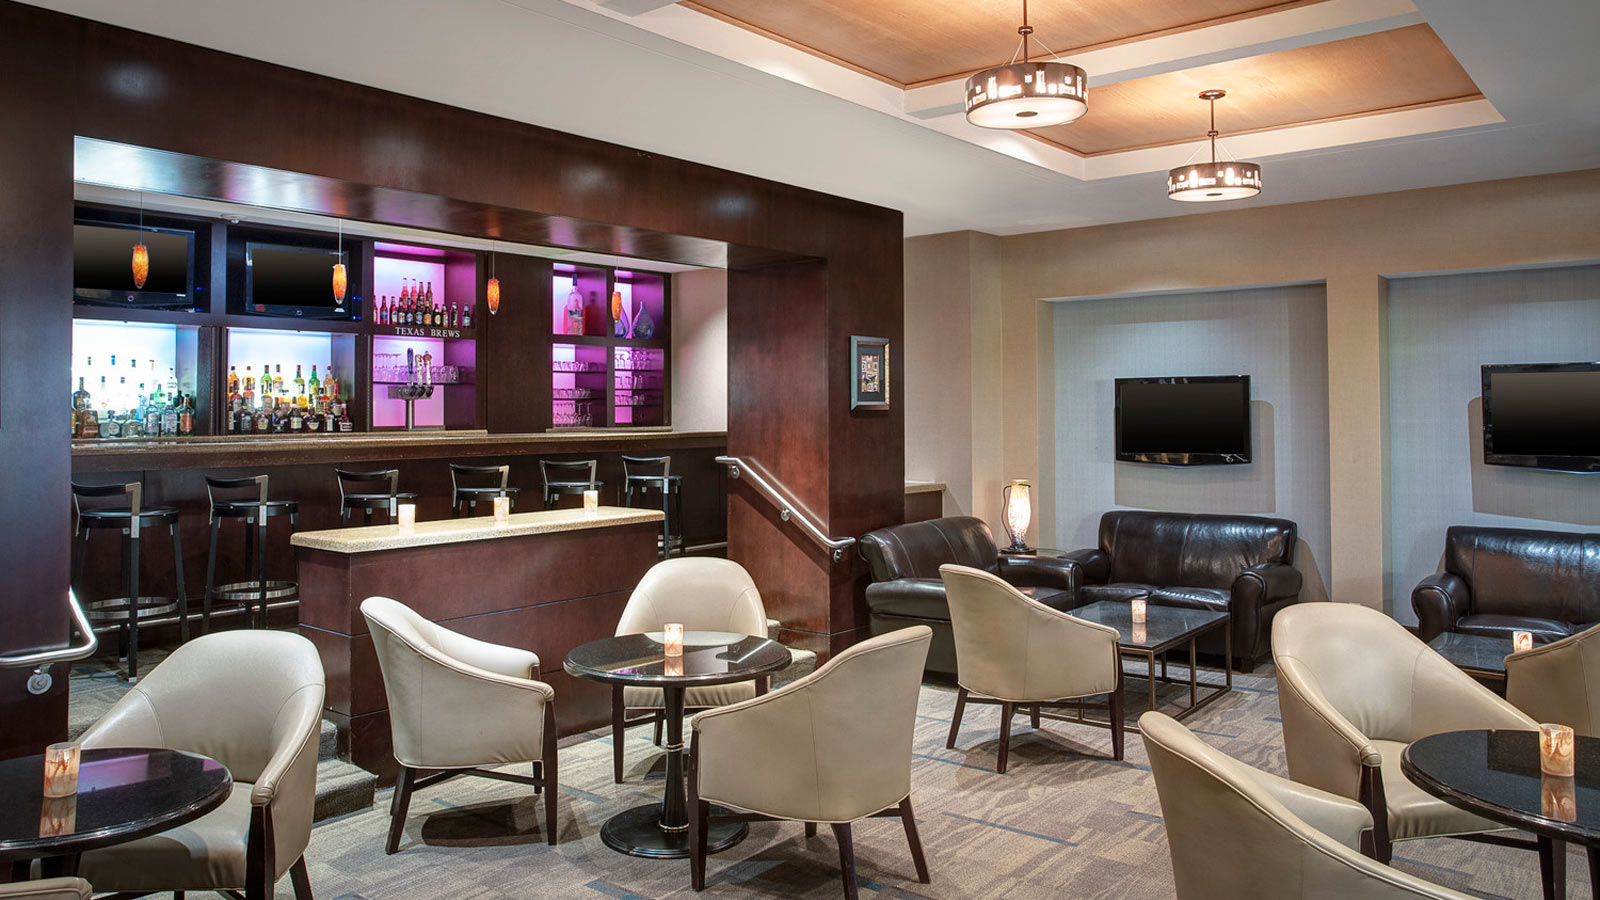 https://www.hotelsbyday.com/_data/default-hotel_image/0/2660/sheraton-houston-brookhollow-tuxedos-lounge.jpg